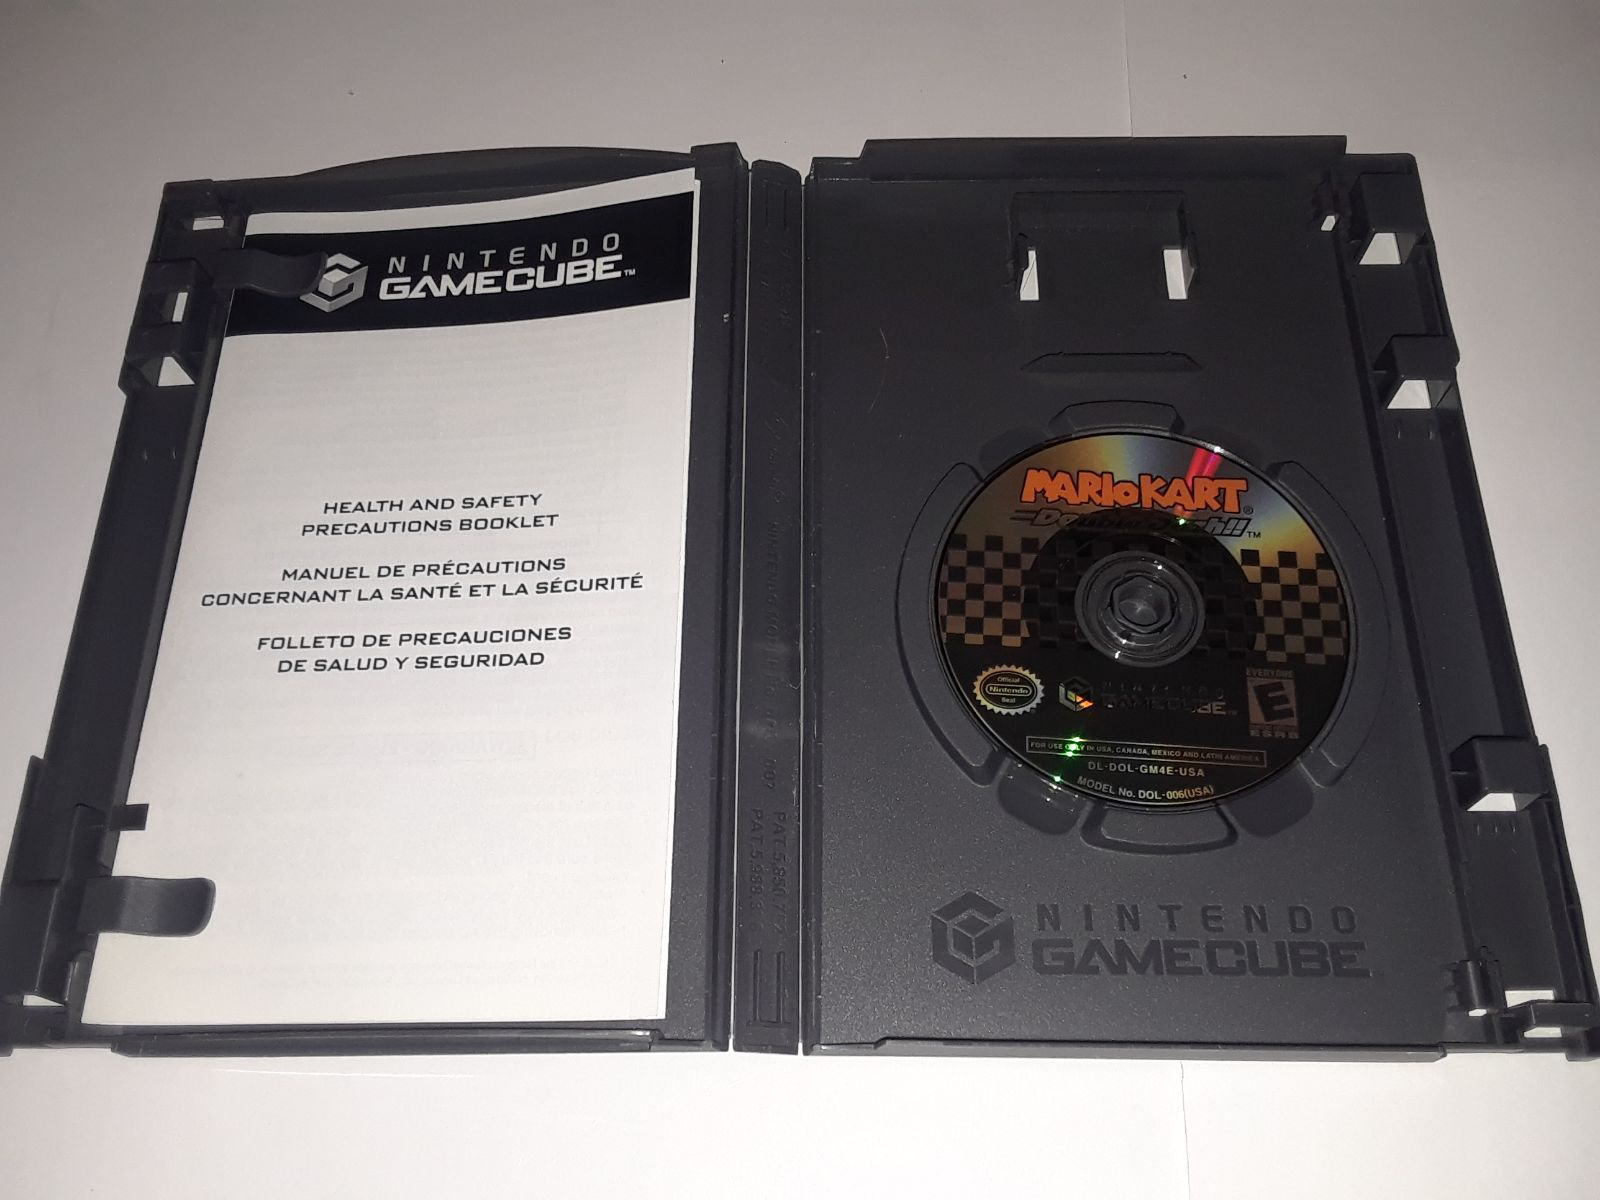 Mario Kart Double Dash Not For Resale For The Nintendo Gamecube Any Questions Feel Free To Ask Also Bundle Other Item Video Games Nintendo Gamecube Nintendo